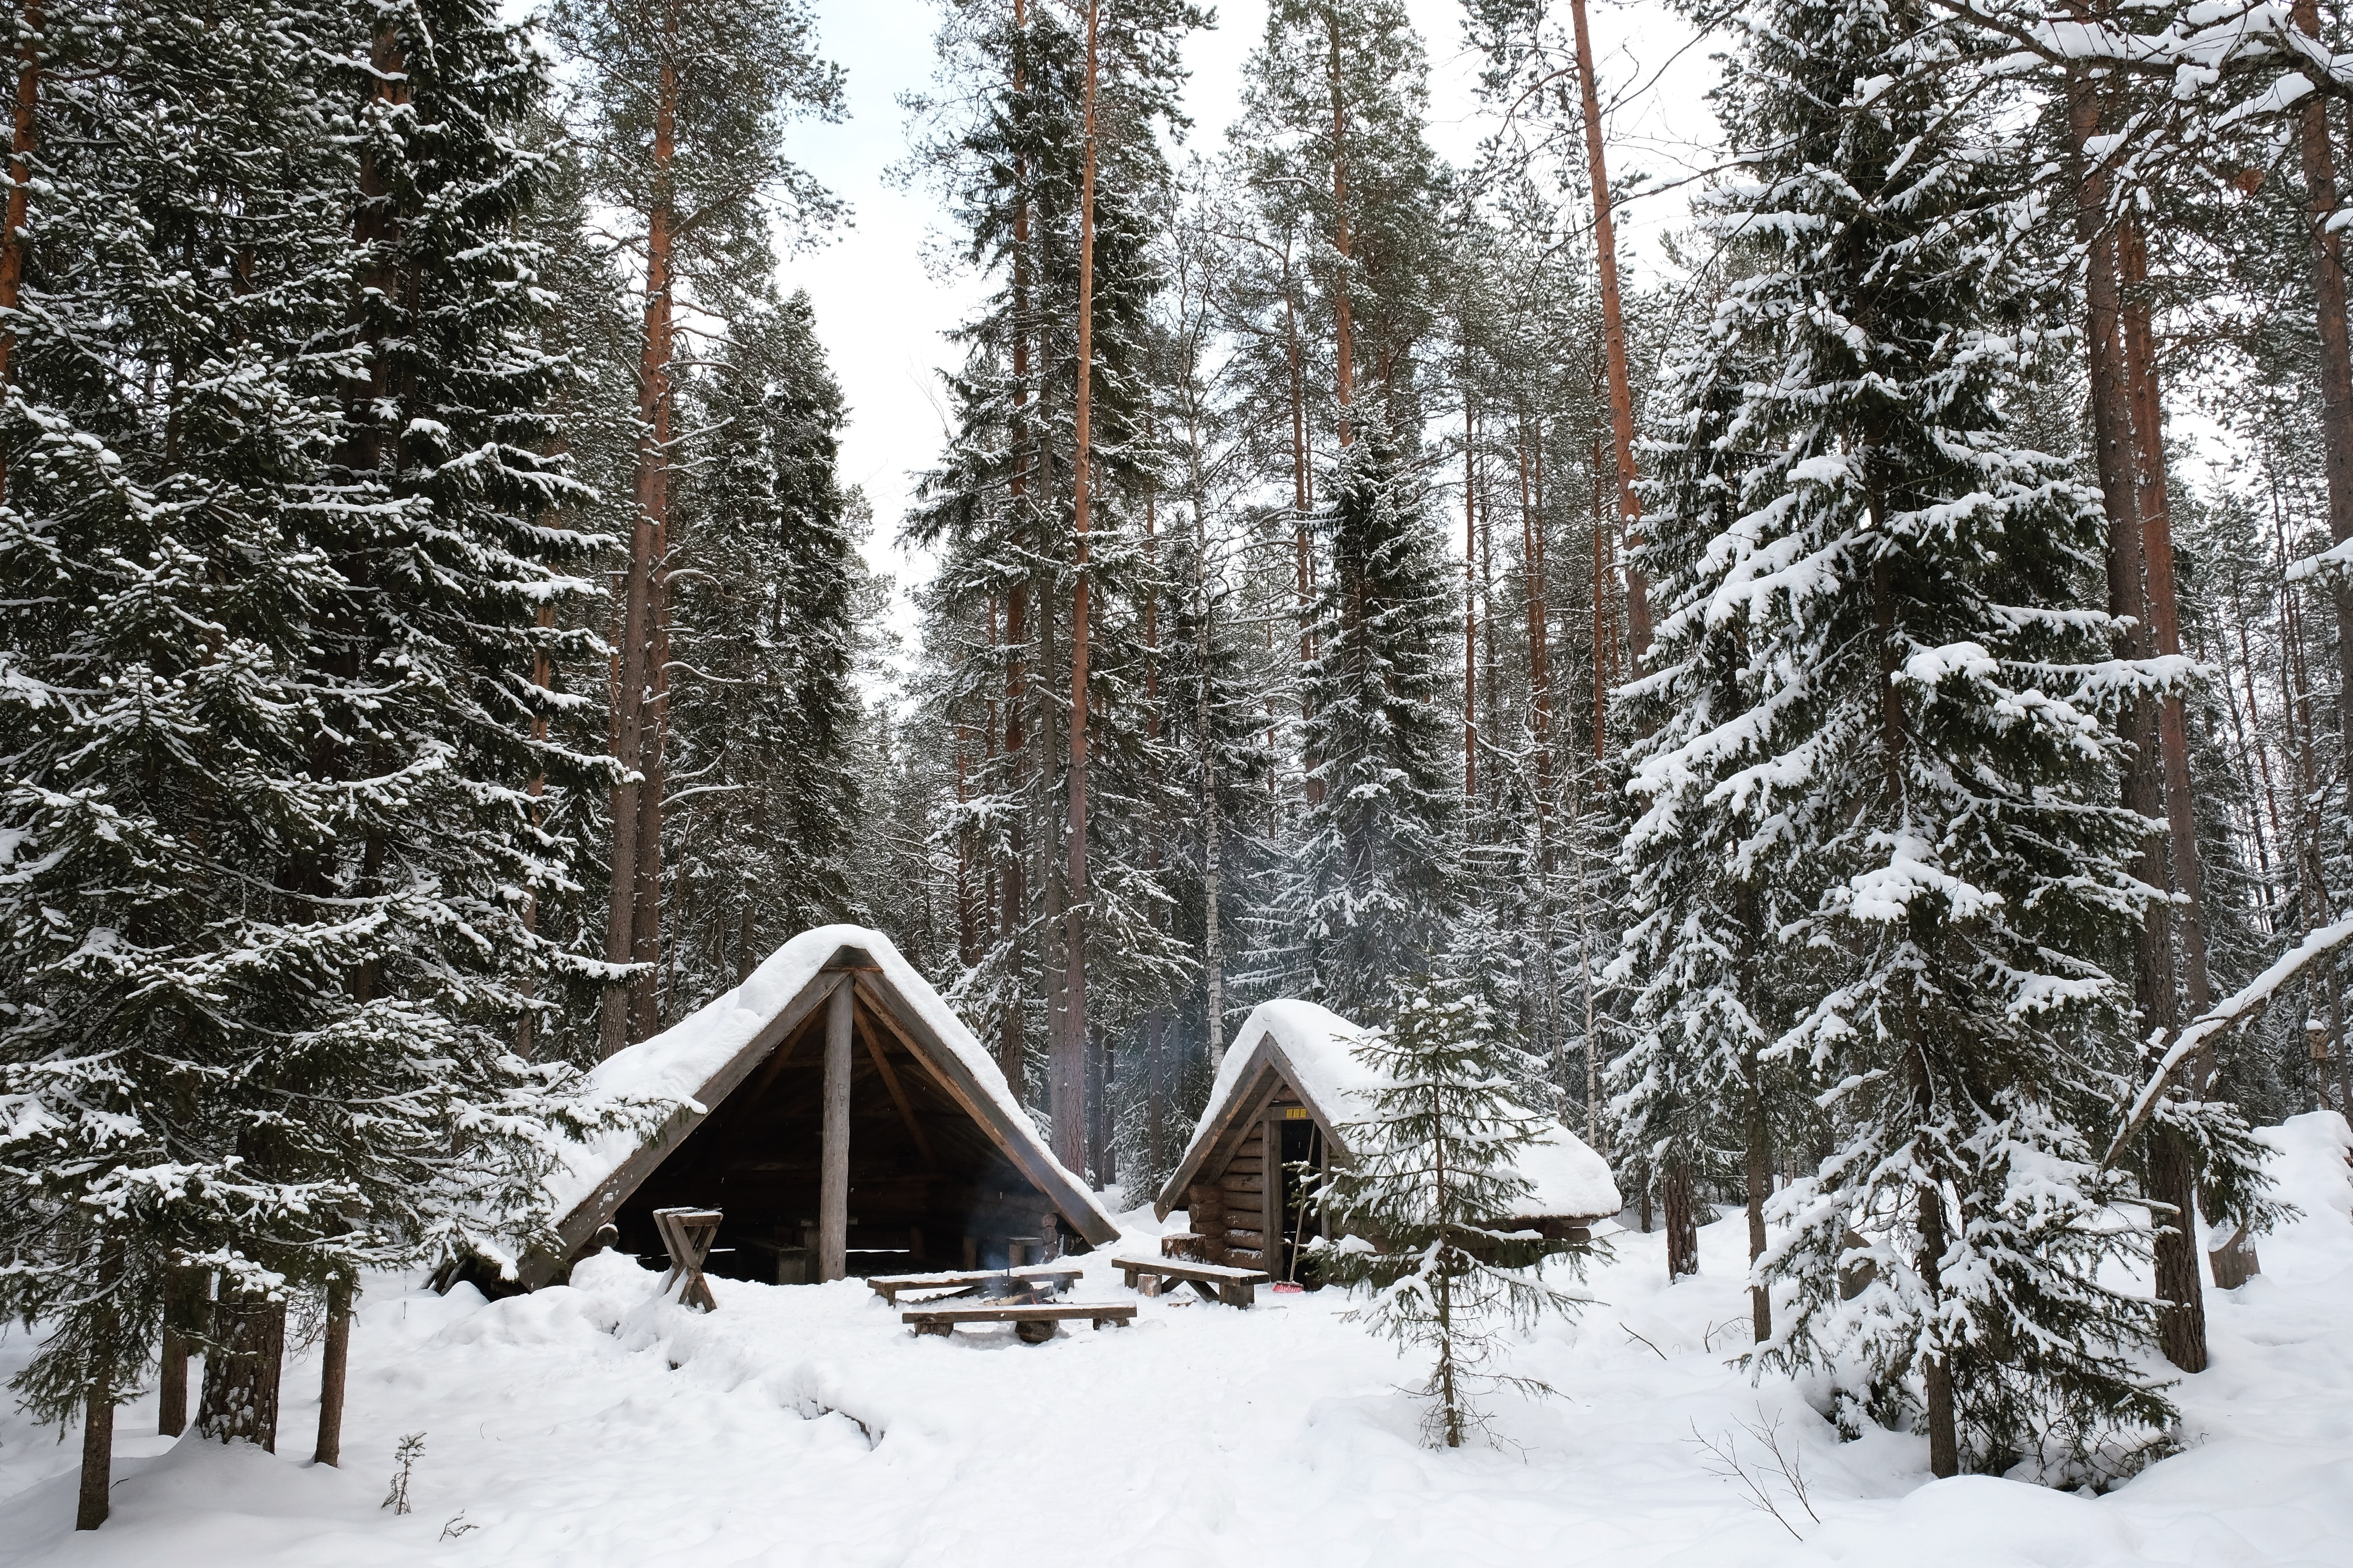 Looking at small cabins inside a forest in Rovaniemi during the cold winter months in Finland